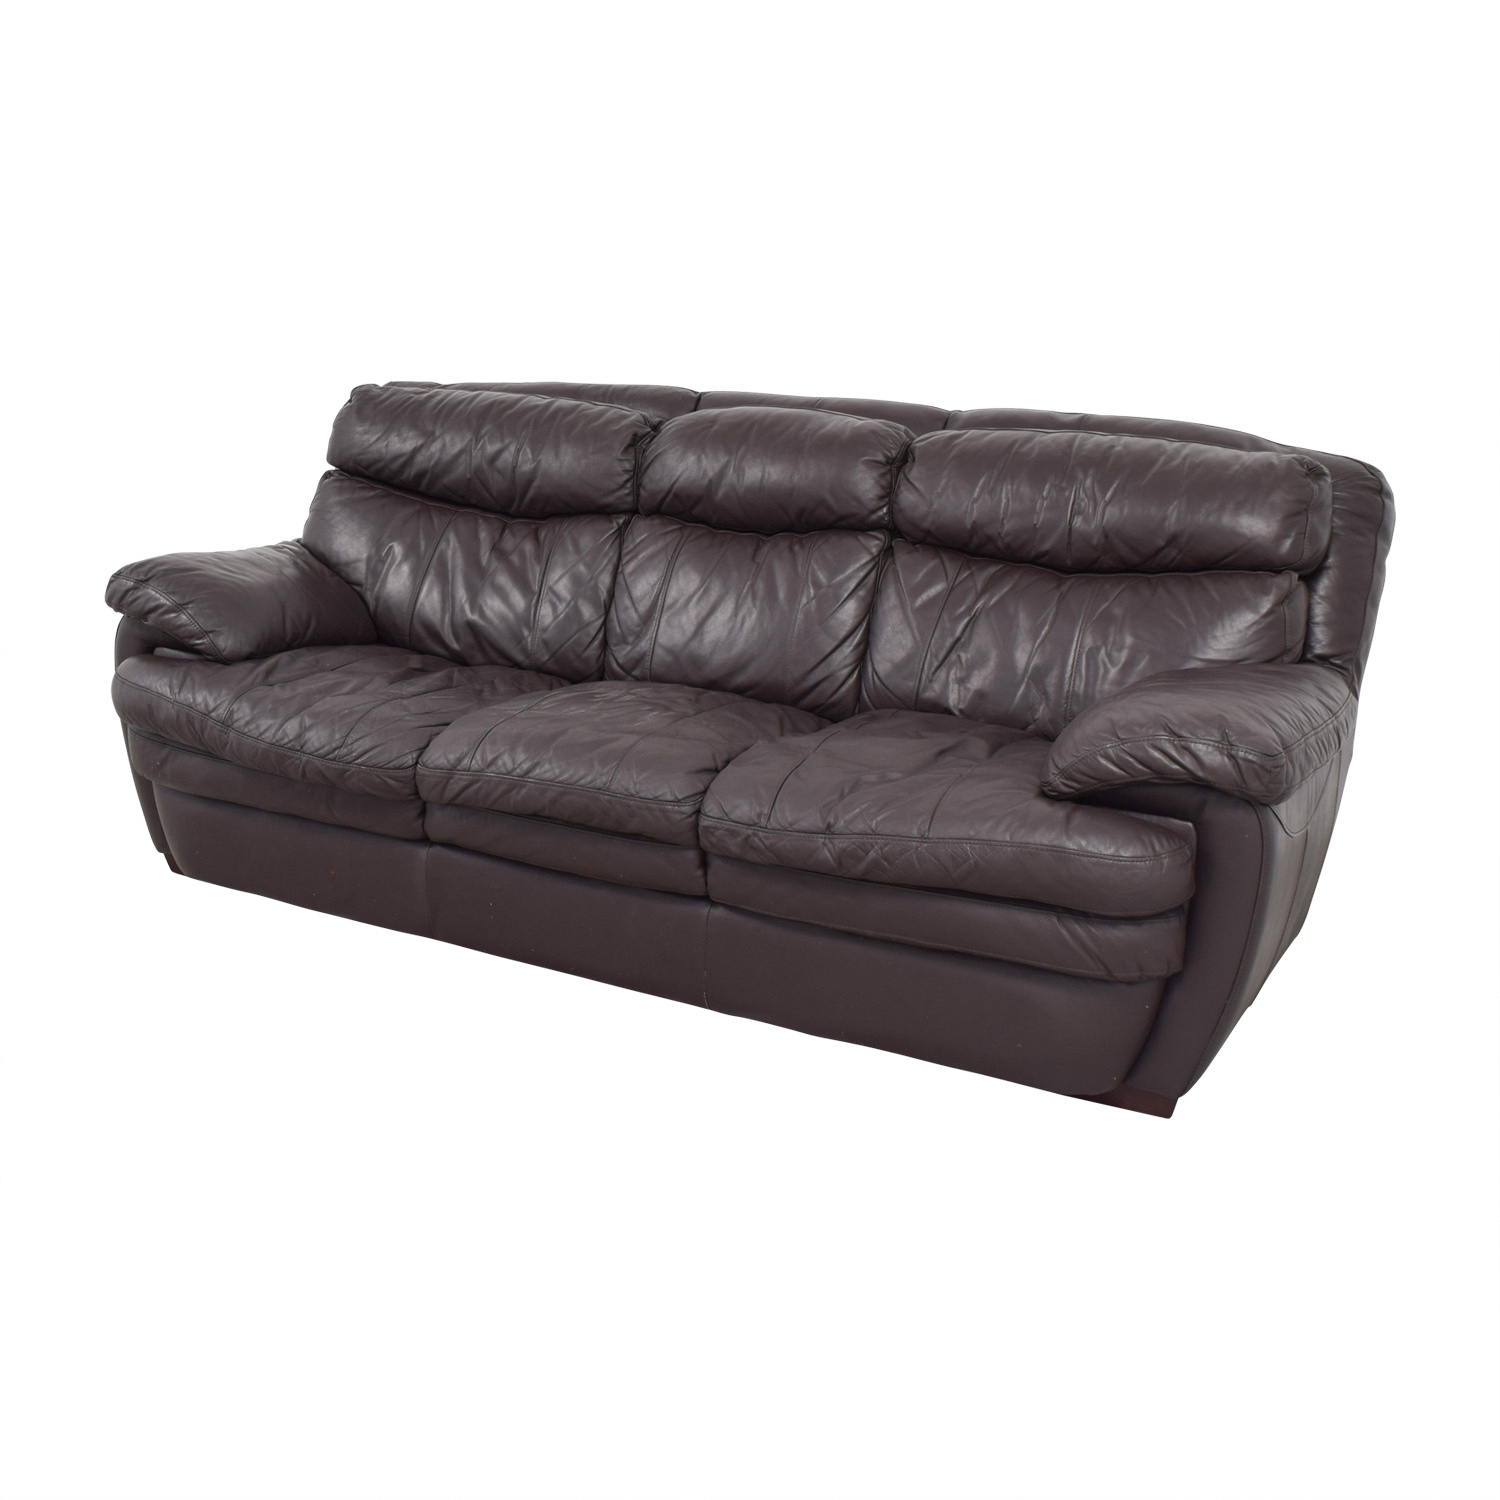 Cushions For Brown Leather Sofas 90 Off Bob 39s Furniture Bob 39s Furniture Three Cushion